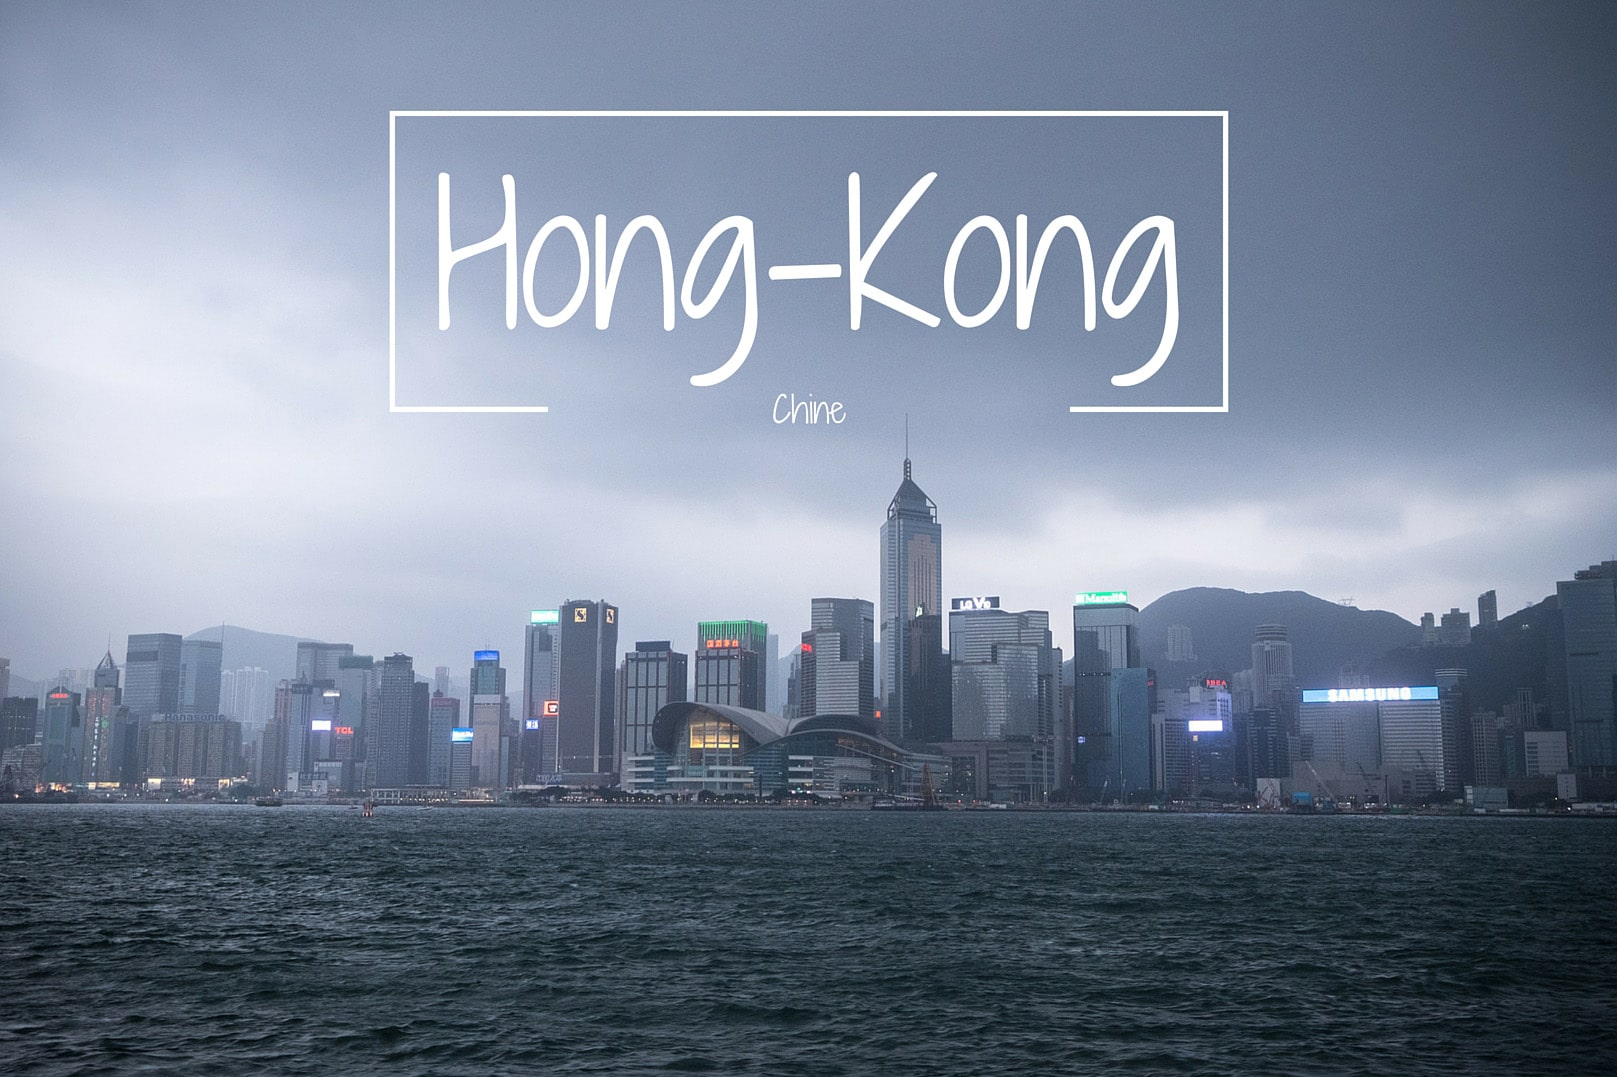 Site de rencontre hong kong